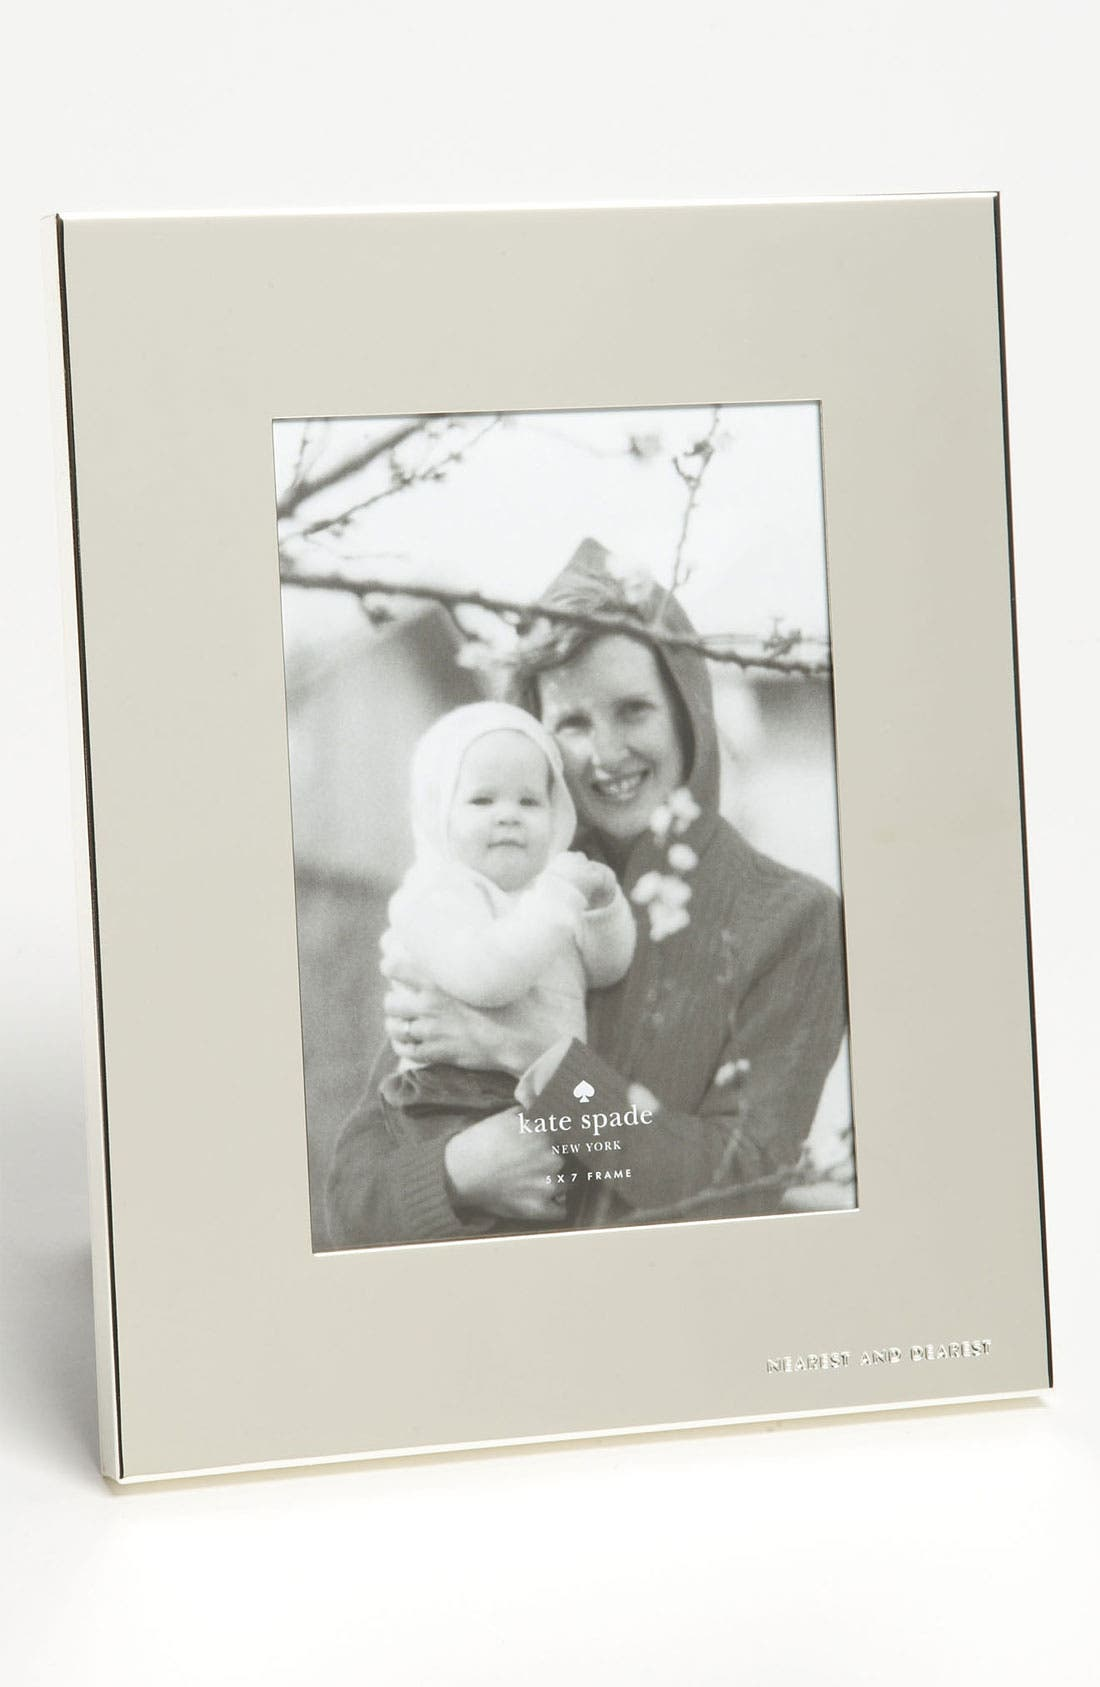 Alternate Image 1 Selected - kate spade new york 'picture perfect™ - nearest and dearest' picture frame (5x7)